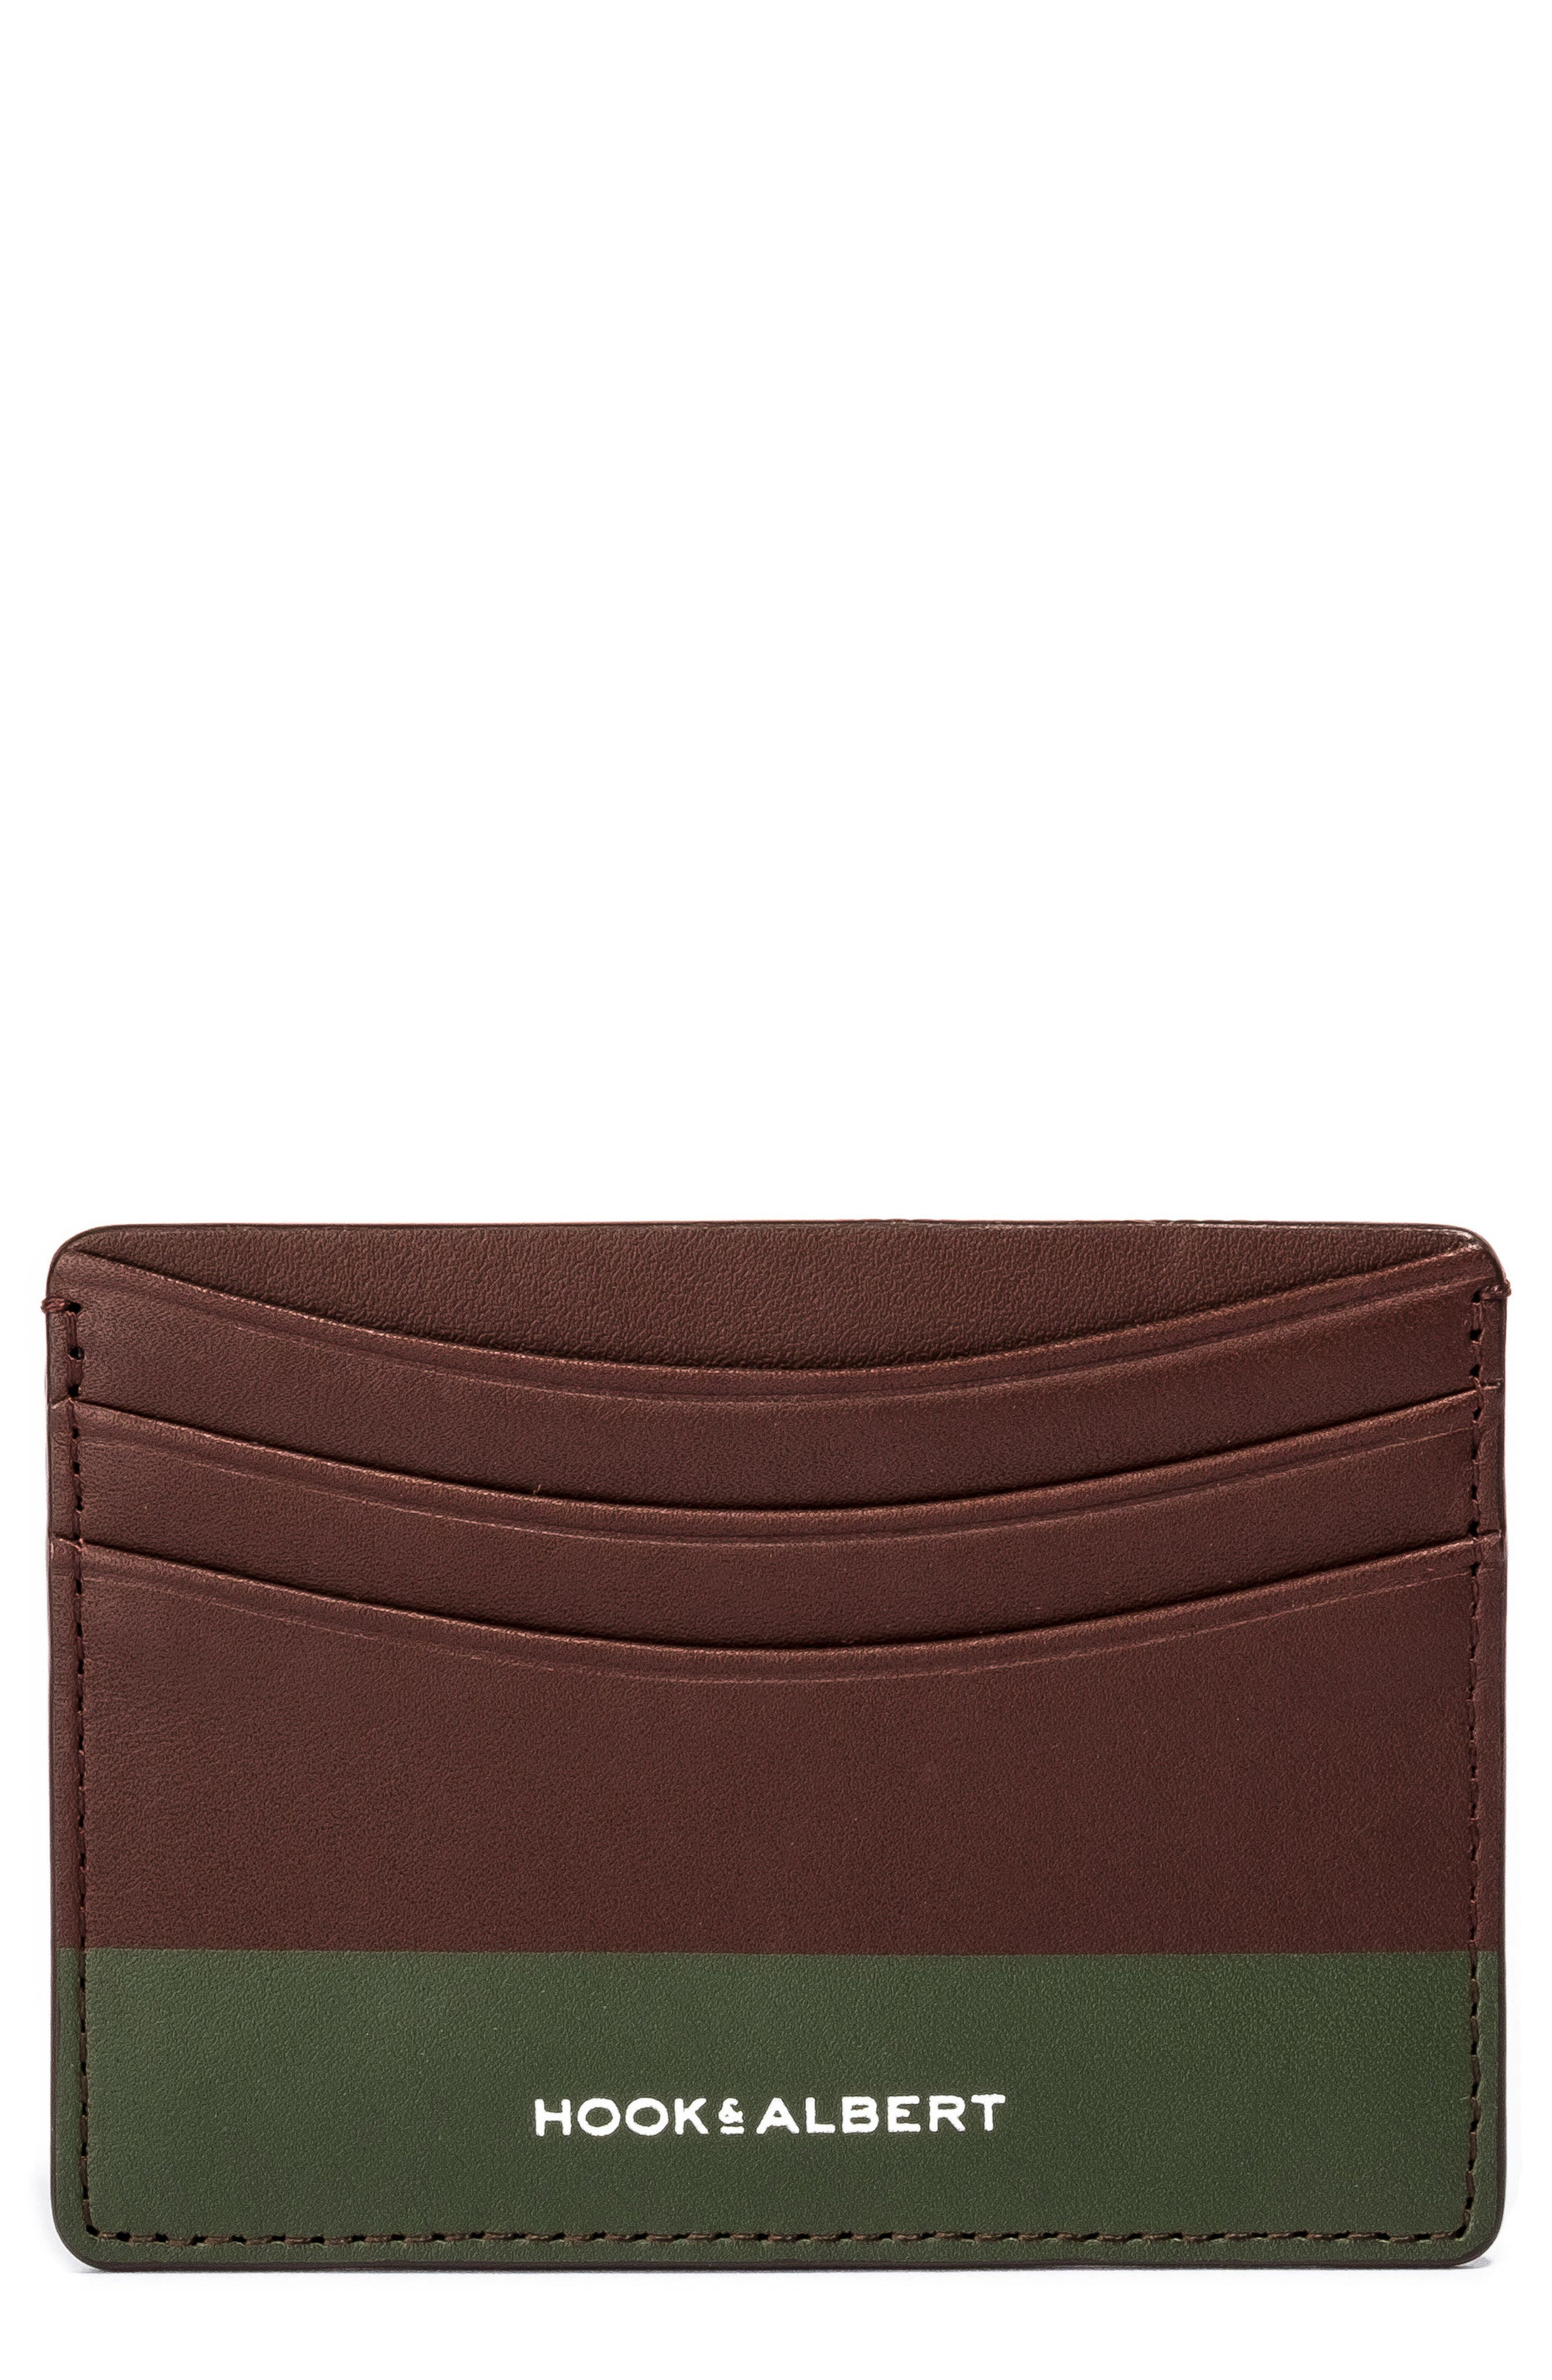 Leather Card Case,                             Main thumbnail 1, color,                             Olive